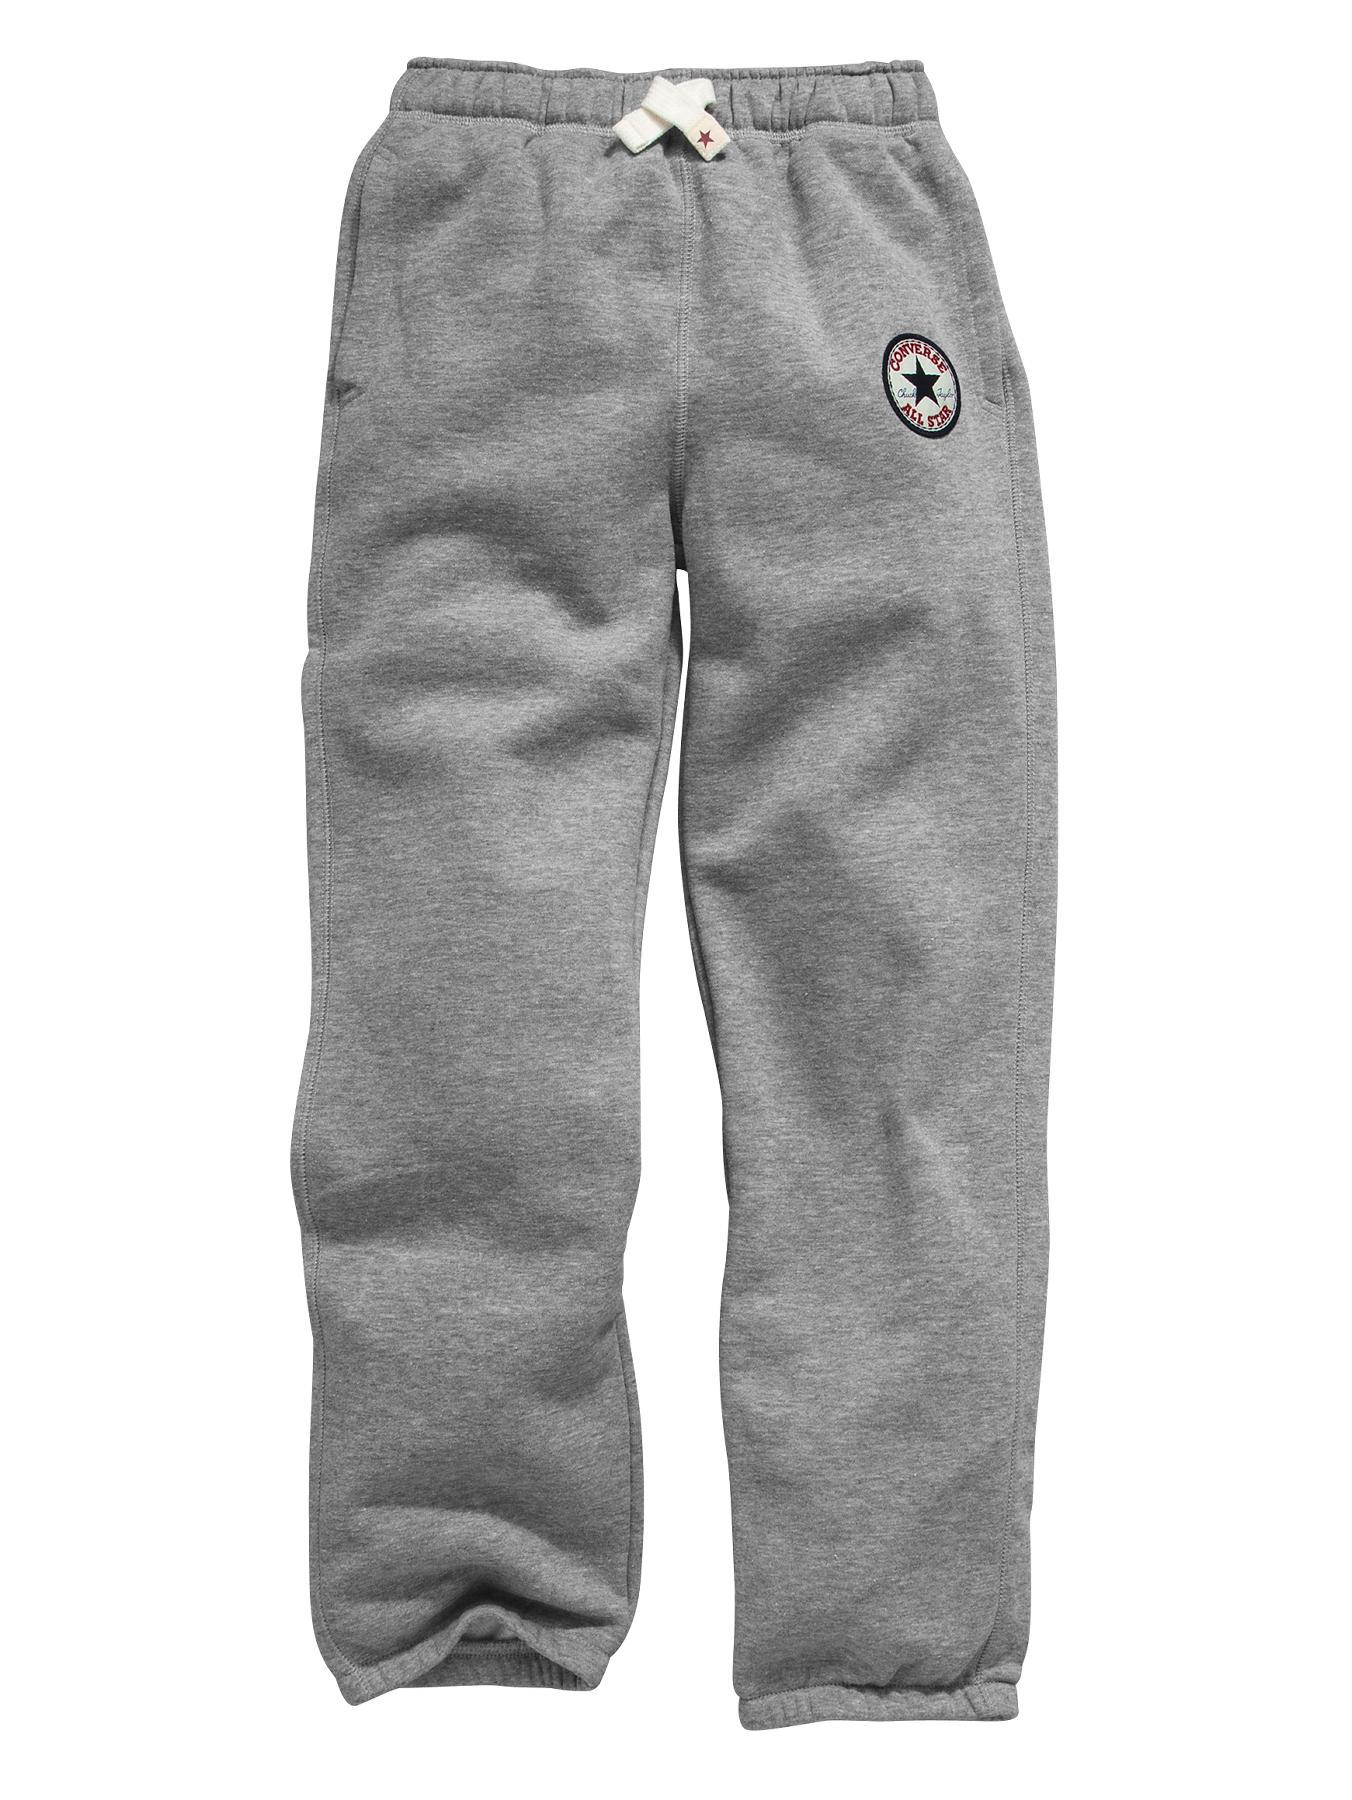 Converse Boys Chuck Patch Fleece Pants - Grey Heather - Grey, Grey